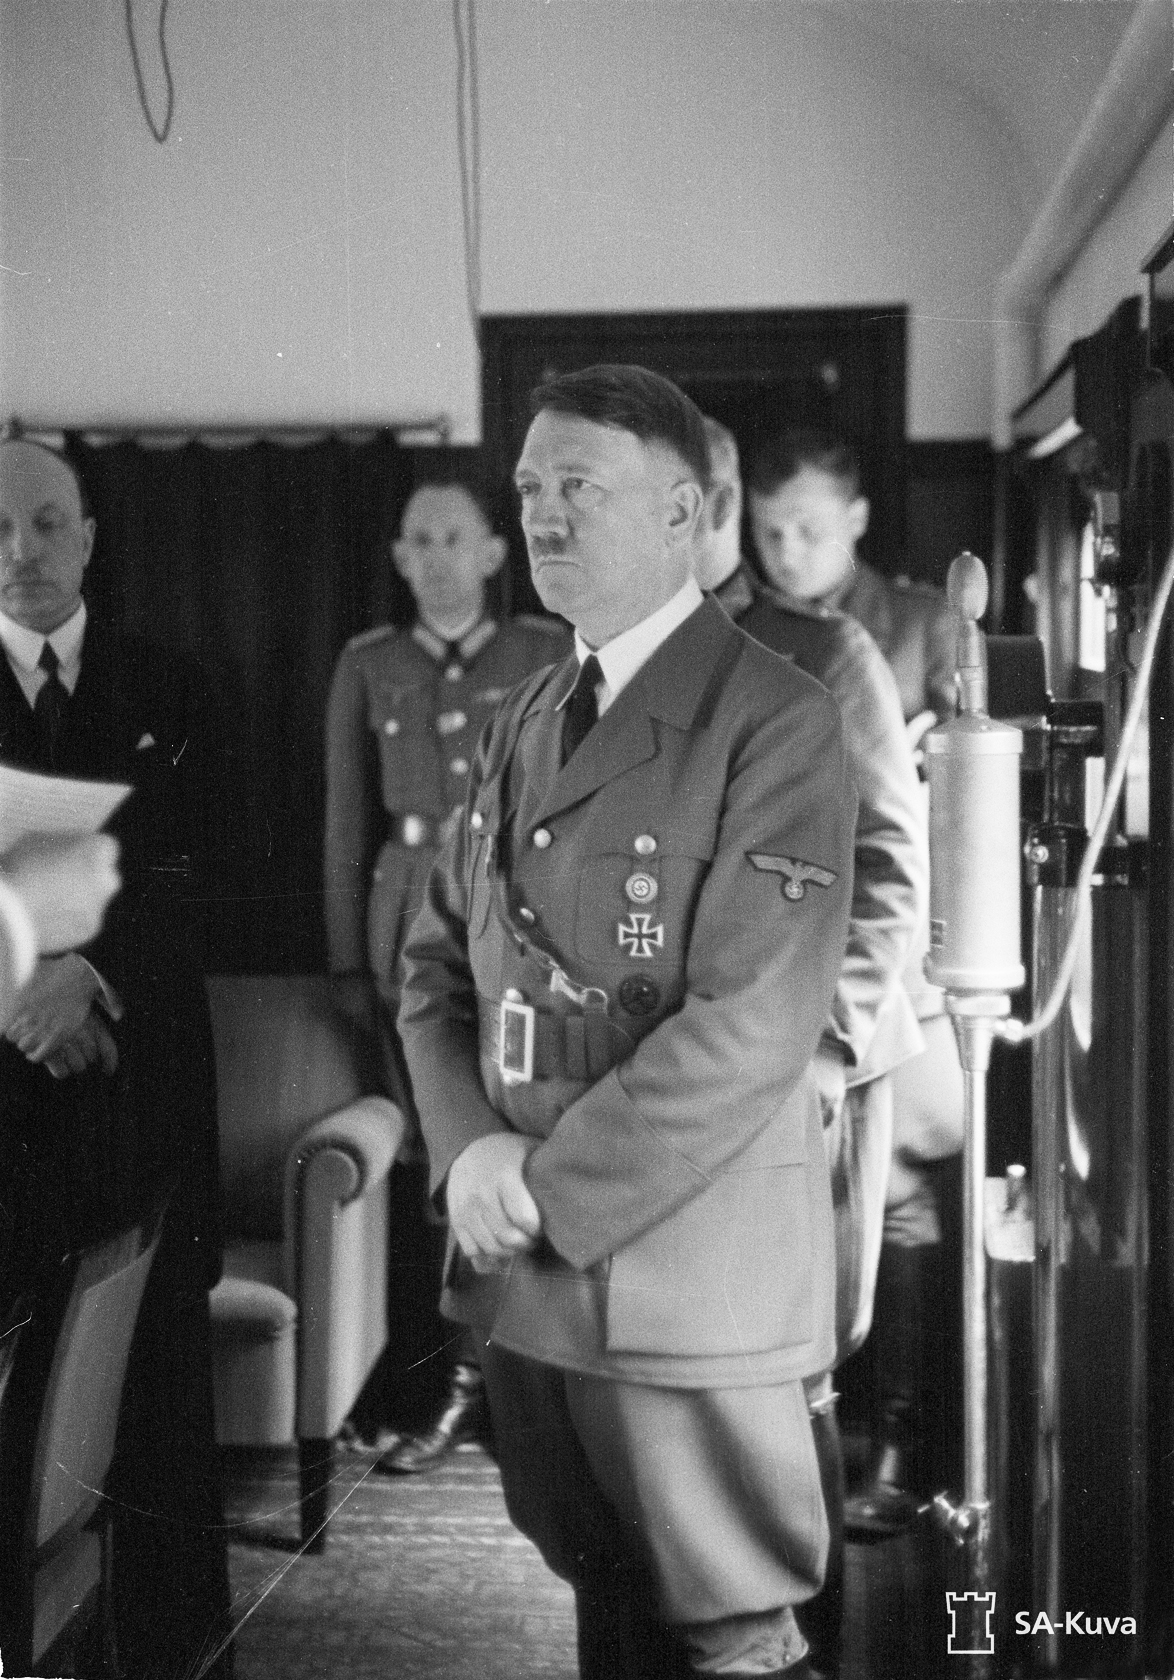 Adolf Hitler in Mannerheim's train